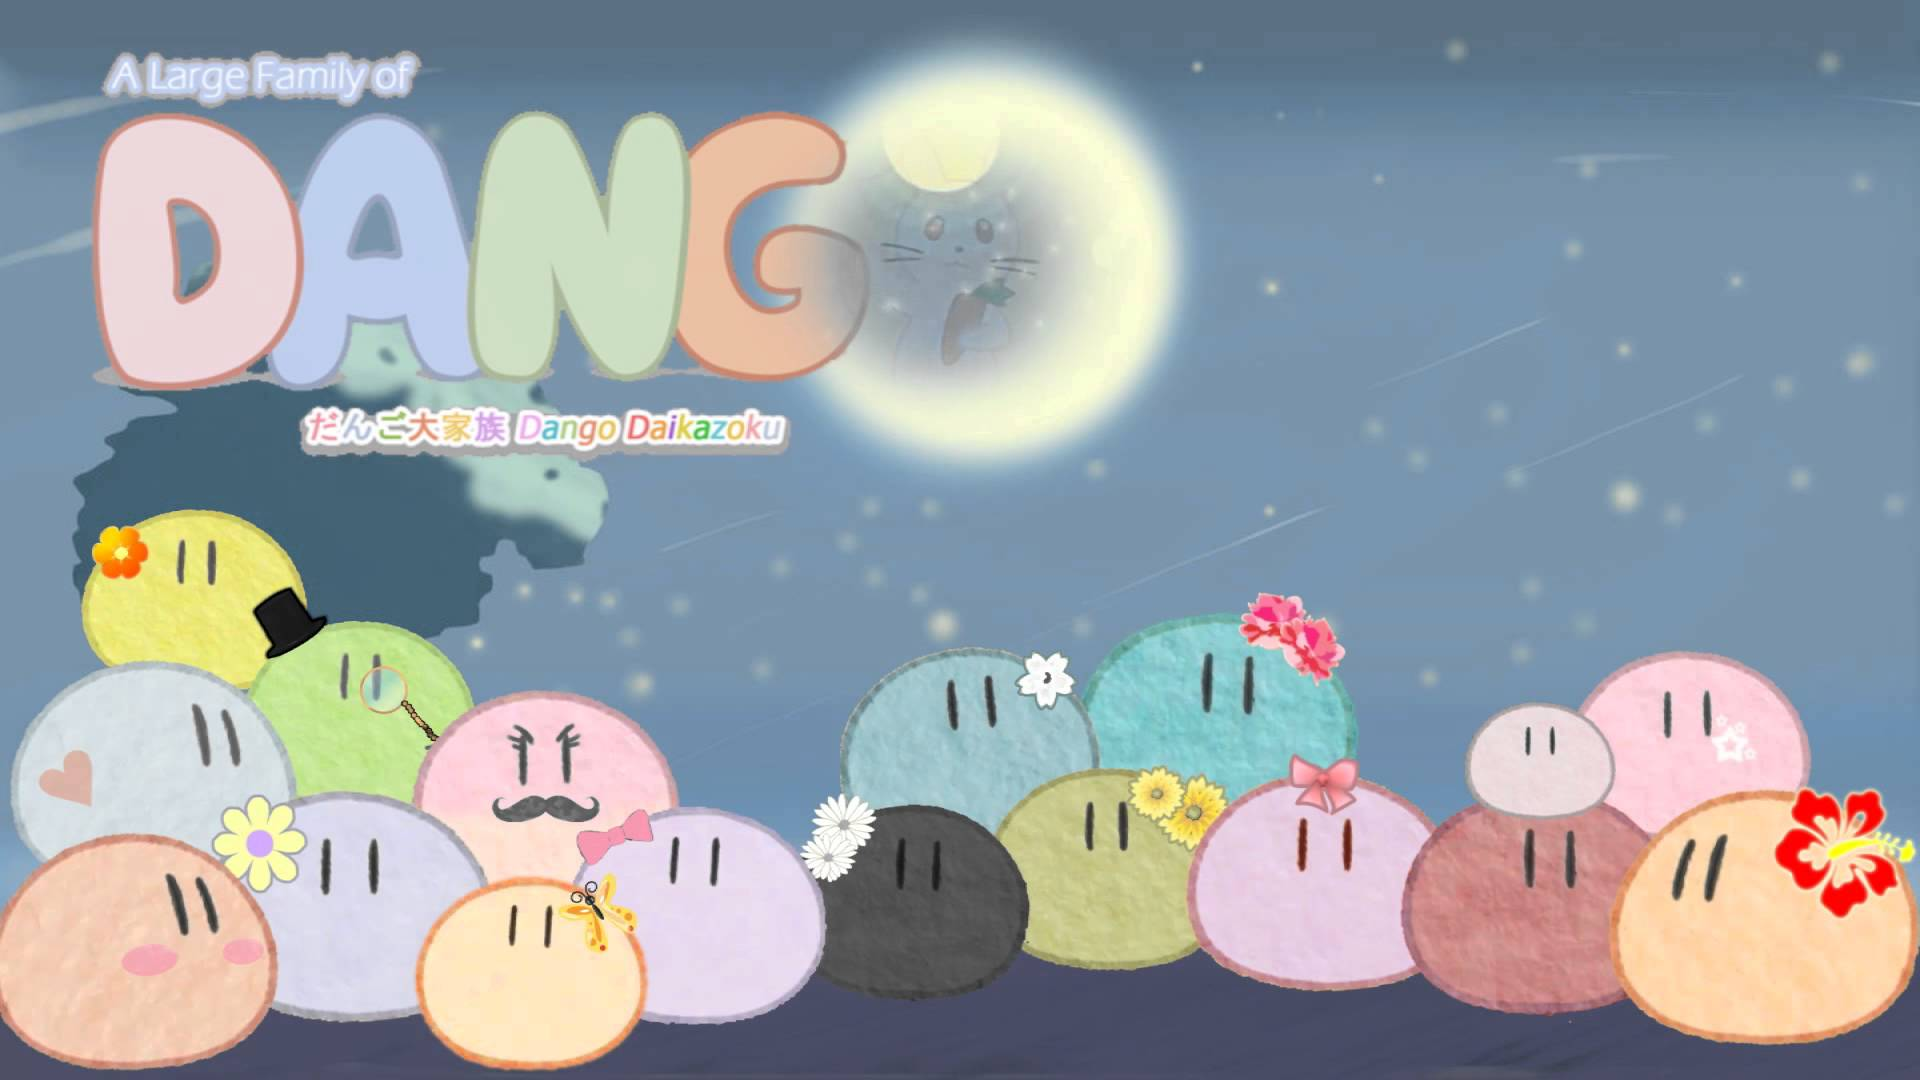 Dango Hd Wallpapers Wallpaper Cave